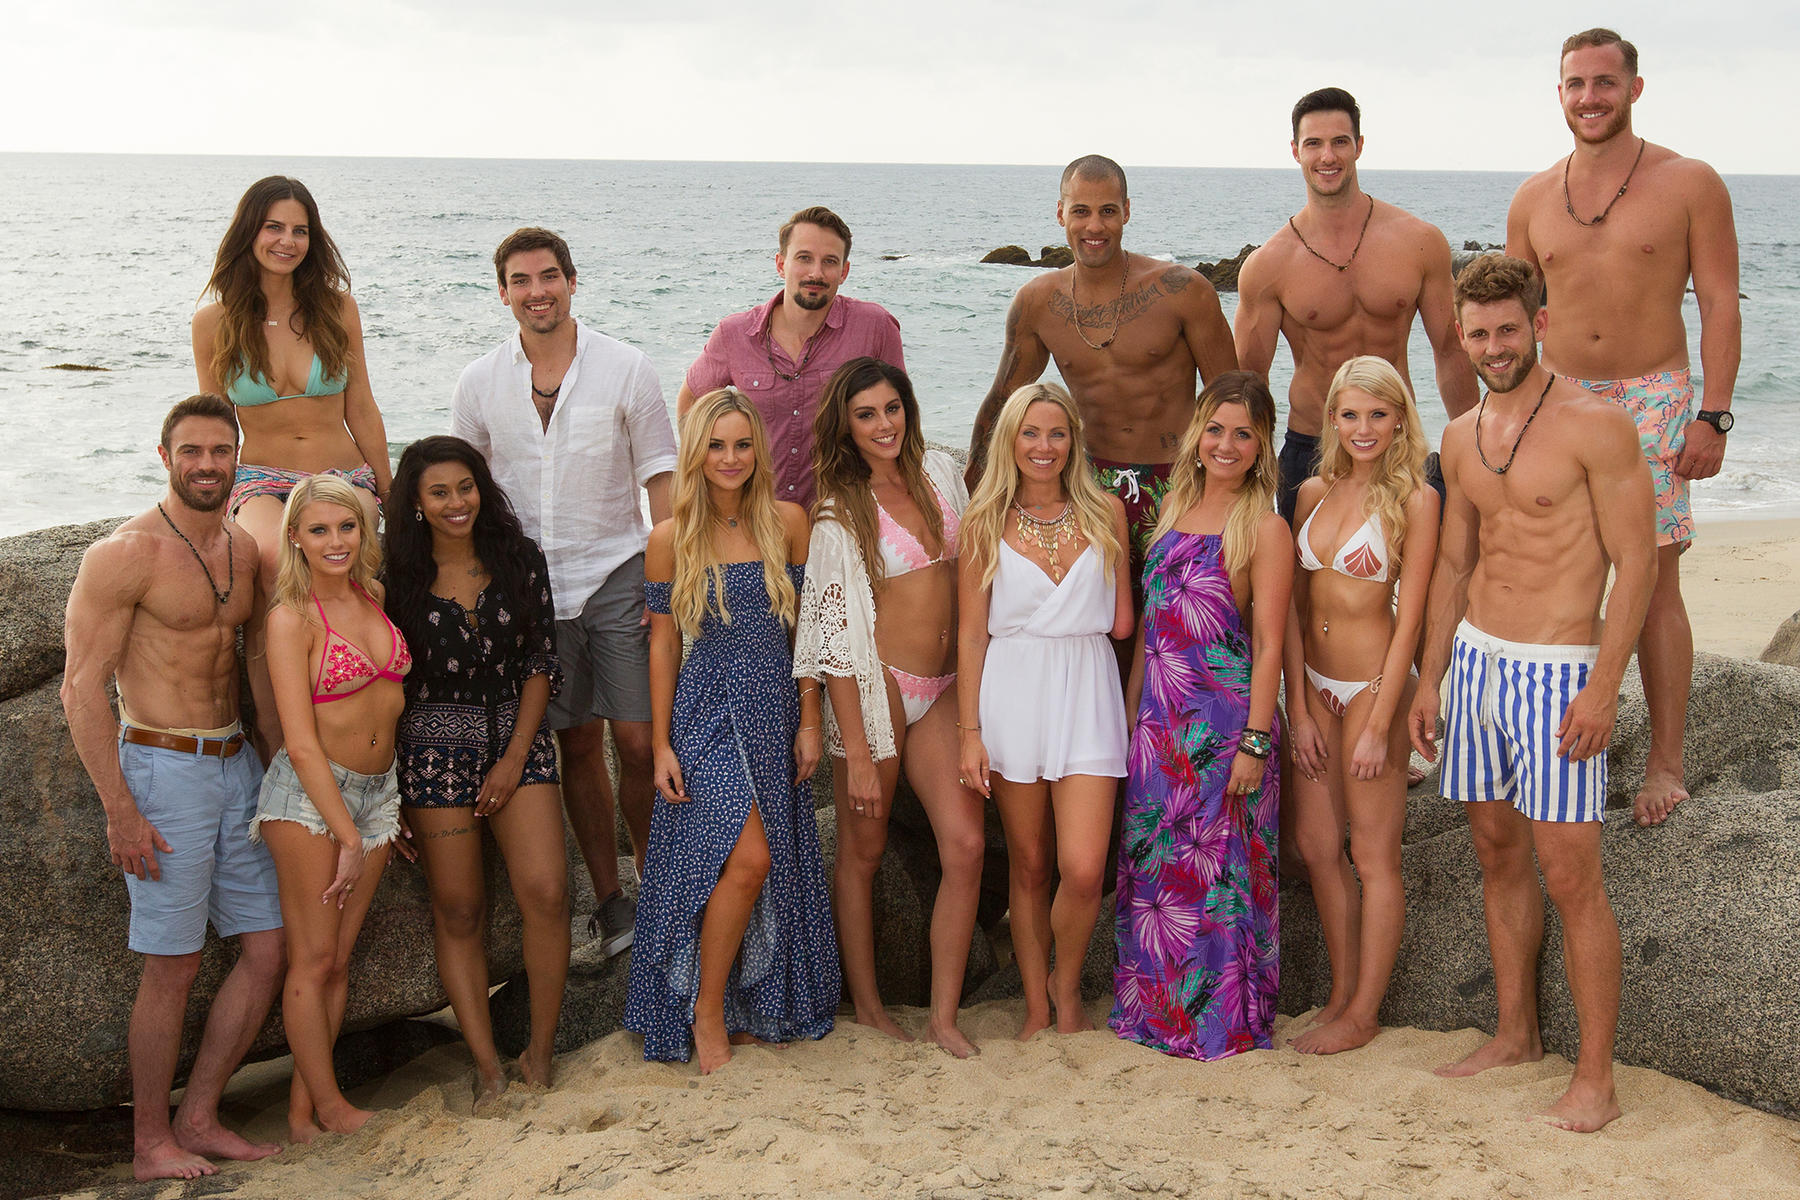 'Bachelor In Paradise' Week 2: Spoilers, Eliminations and Fueling Controversies